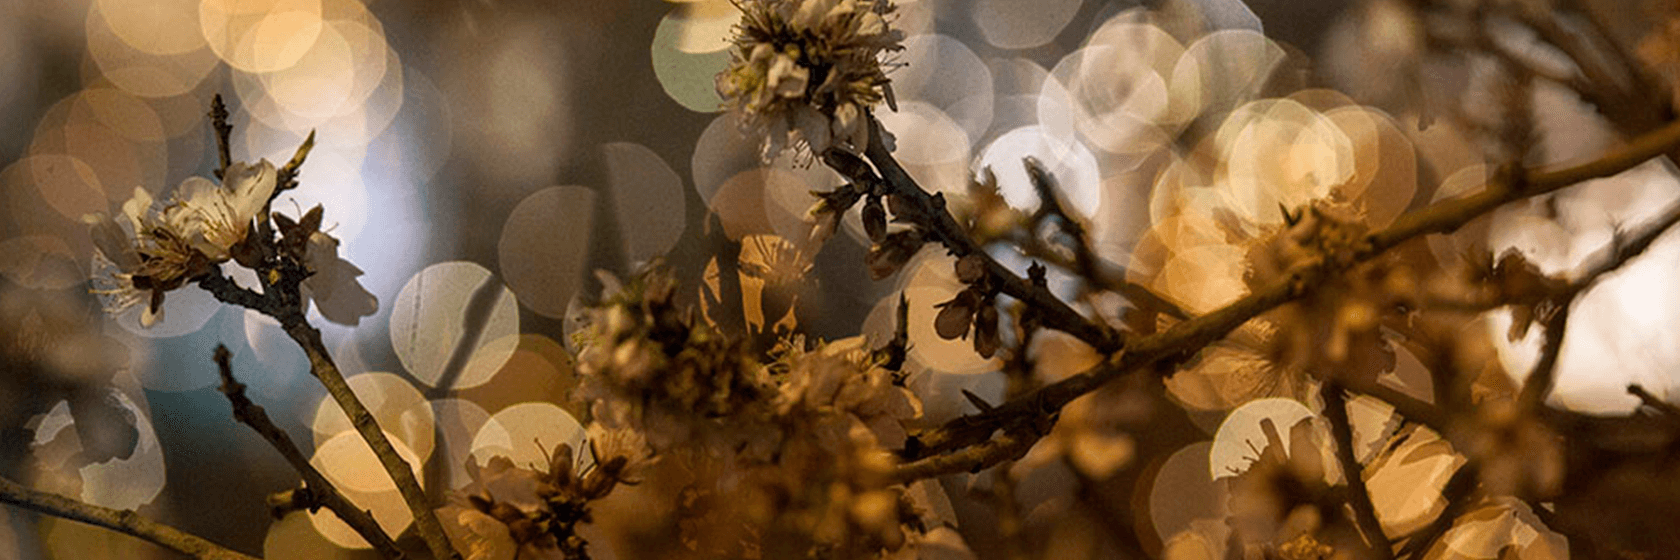 Interview with the flower artist Jordi Vilà | The Room Studio